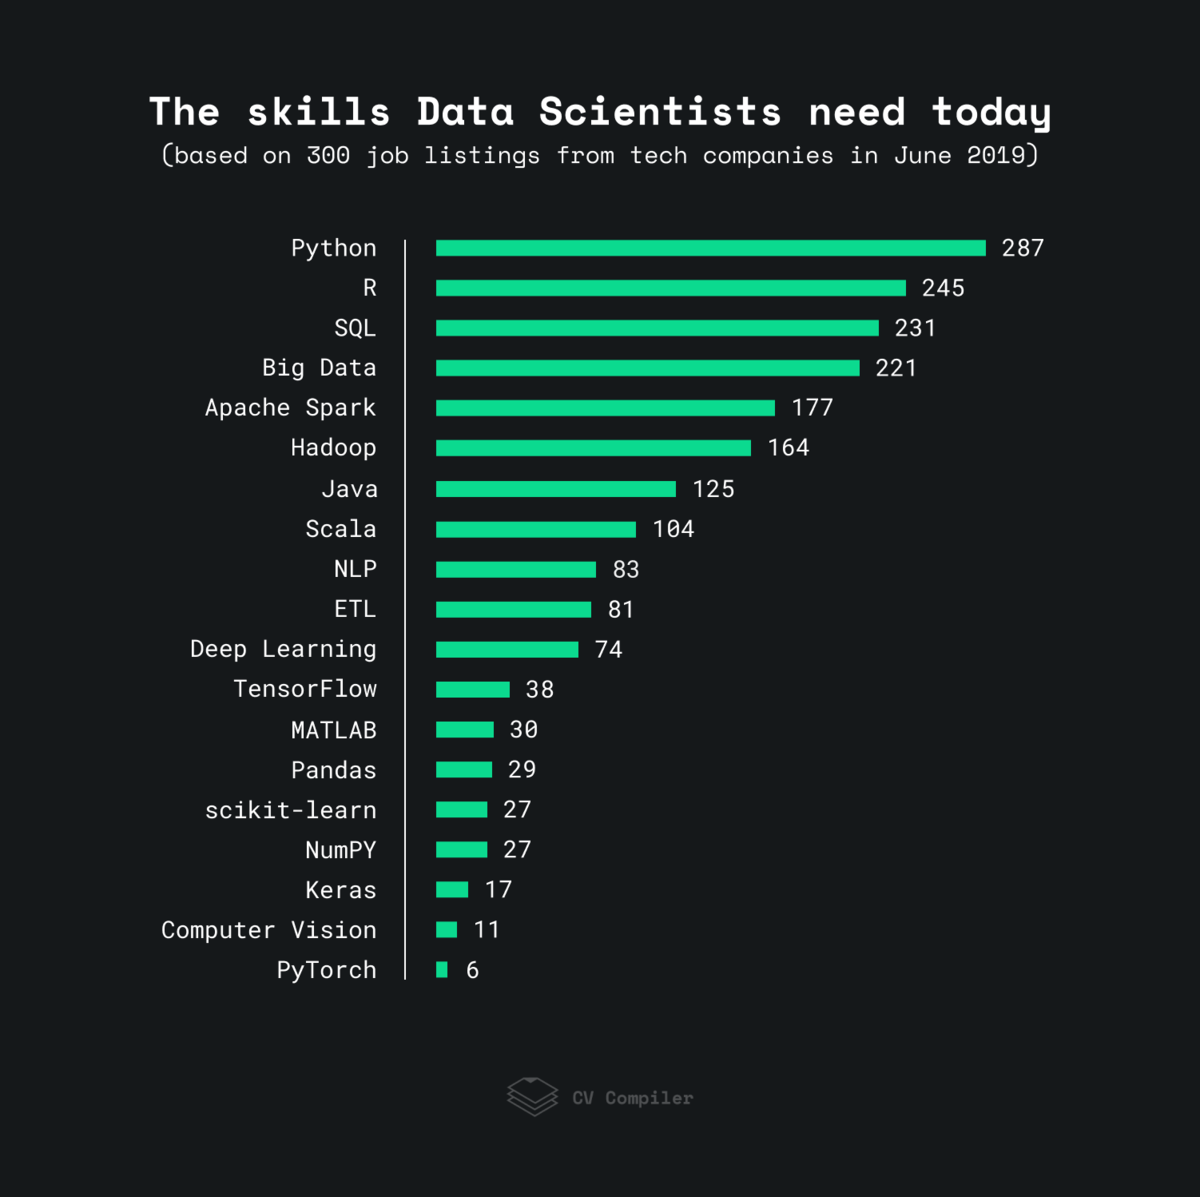 The most in-demand data science skills of 2019